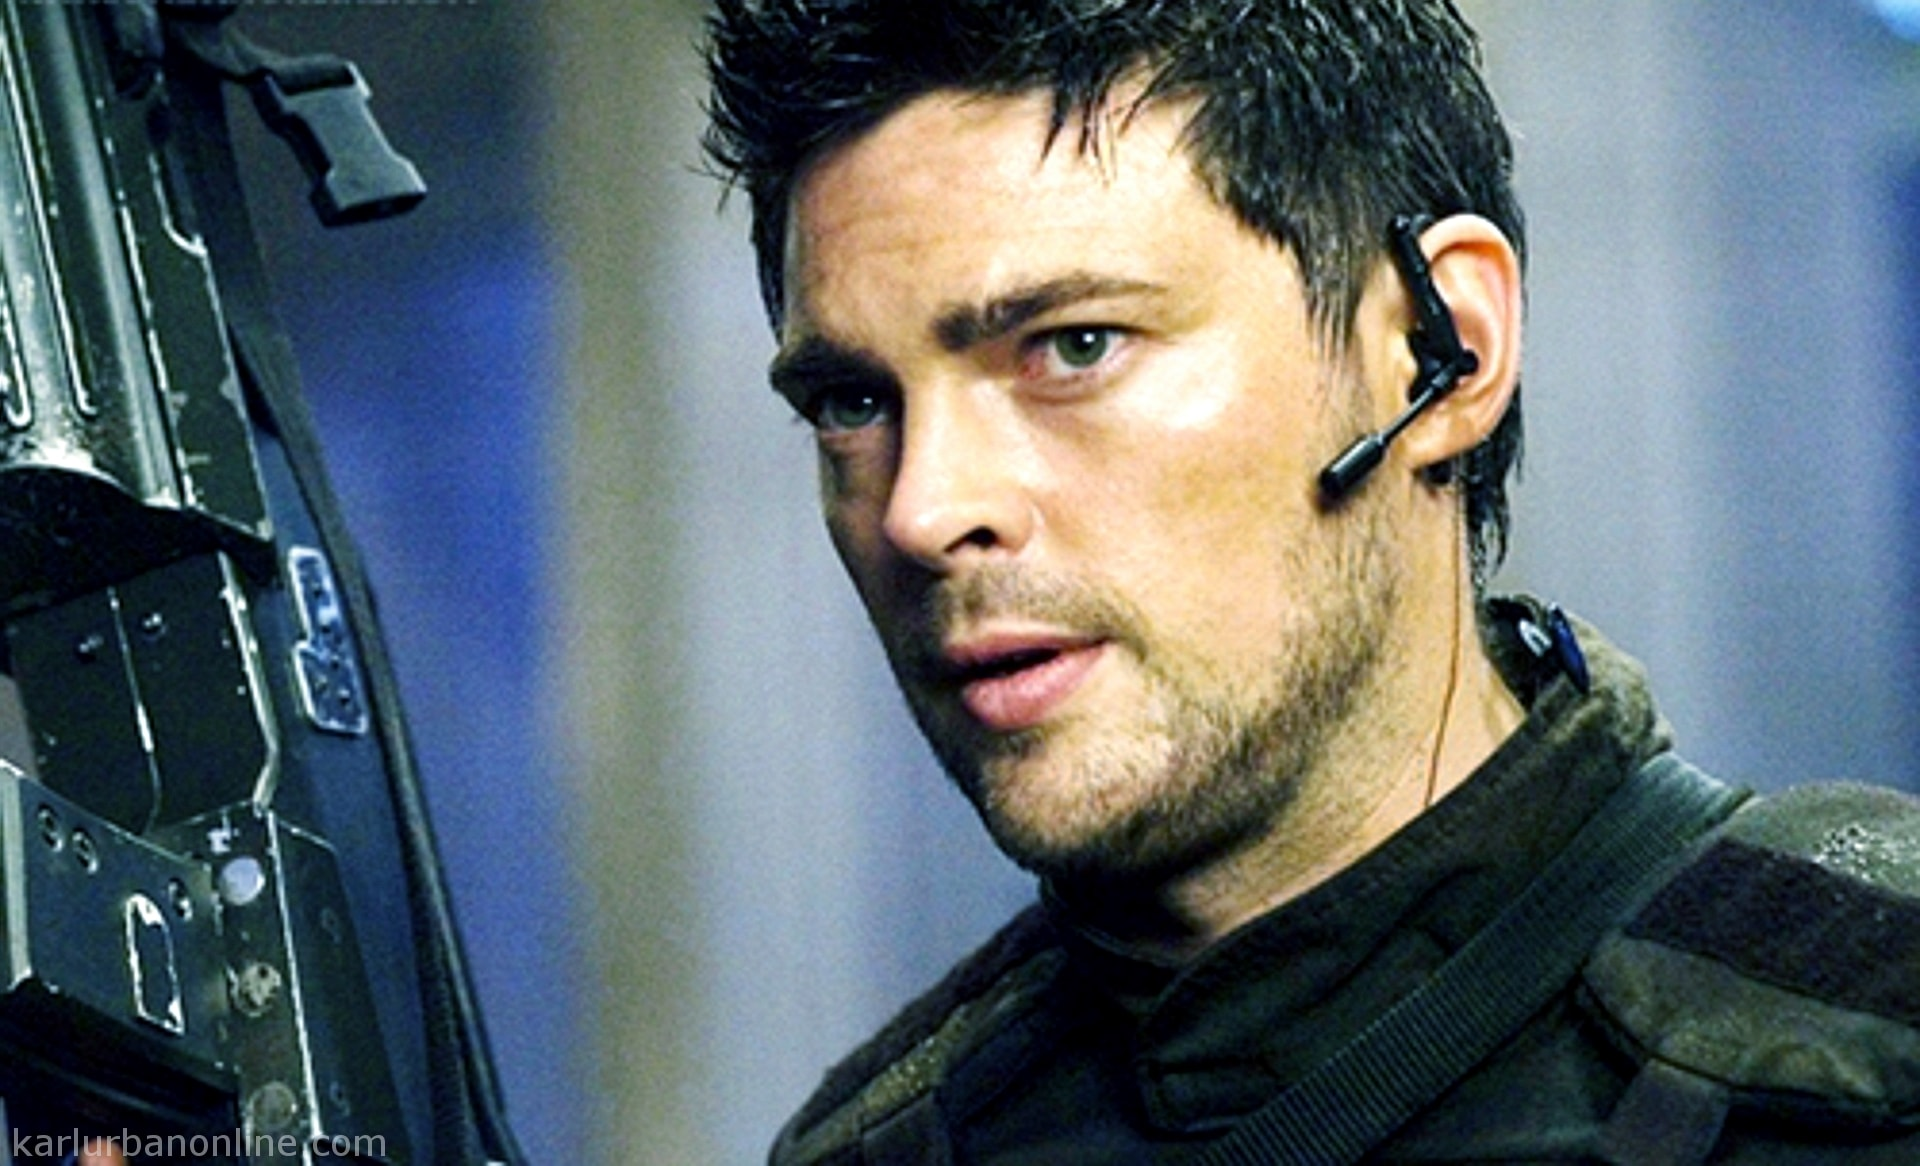 Karl Urban Background